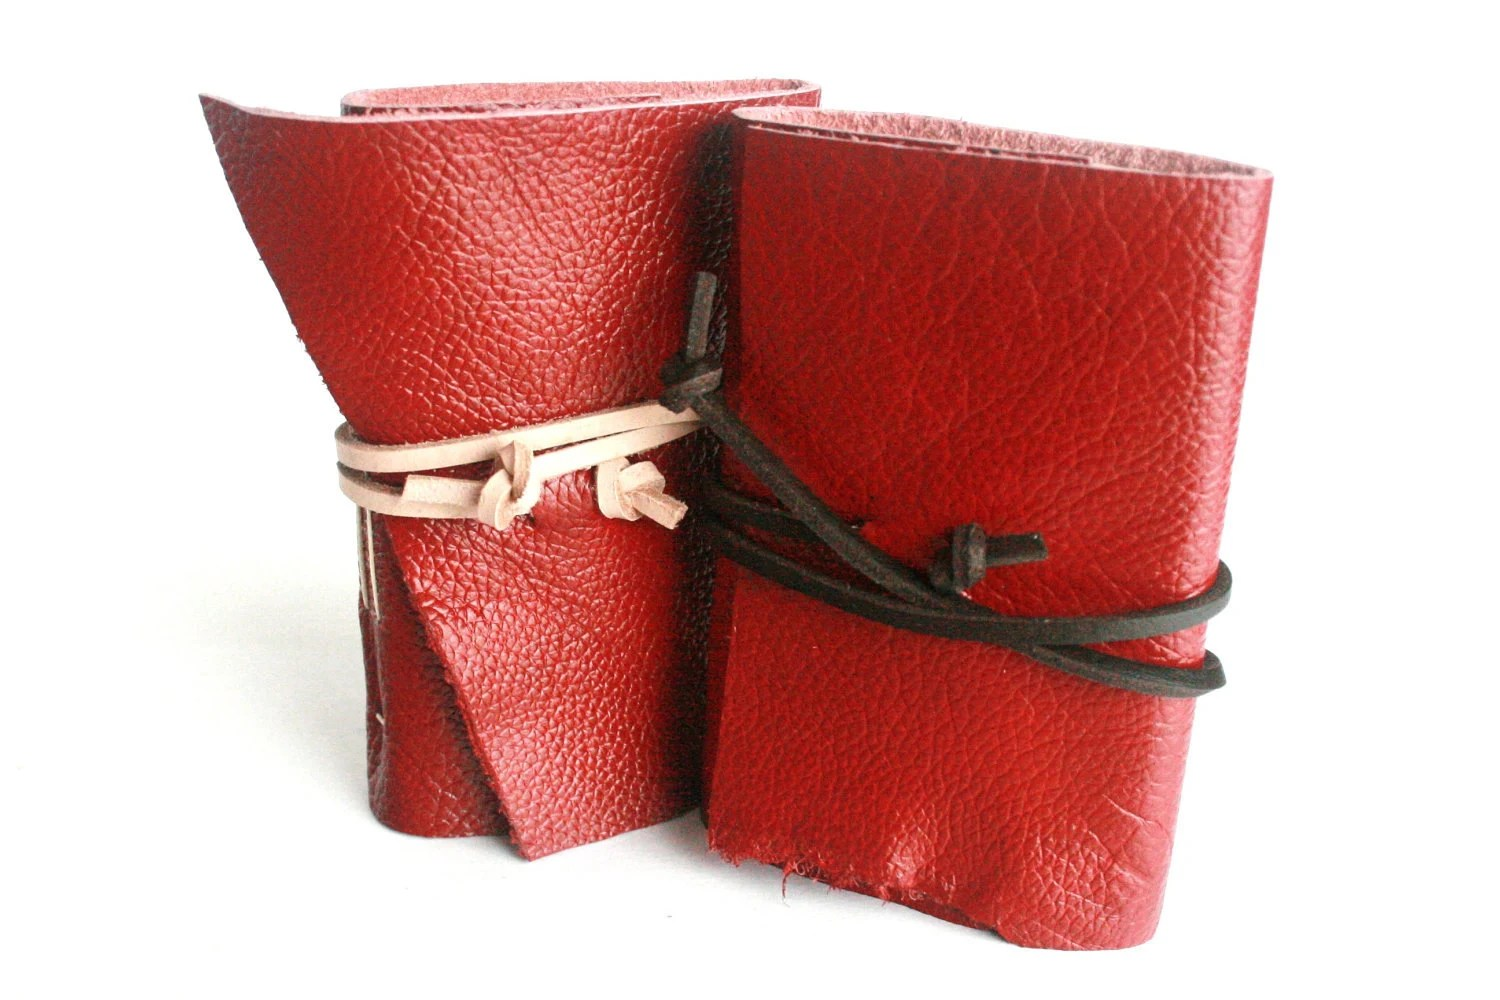 Leather Journal Gift Set, Shiny Red 3 x 4.5 Journals by The Orange Windmill